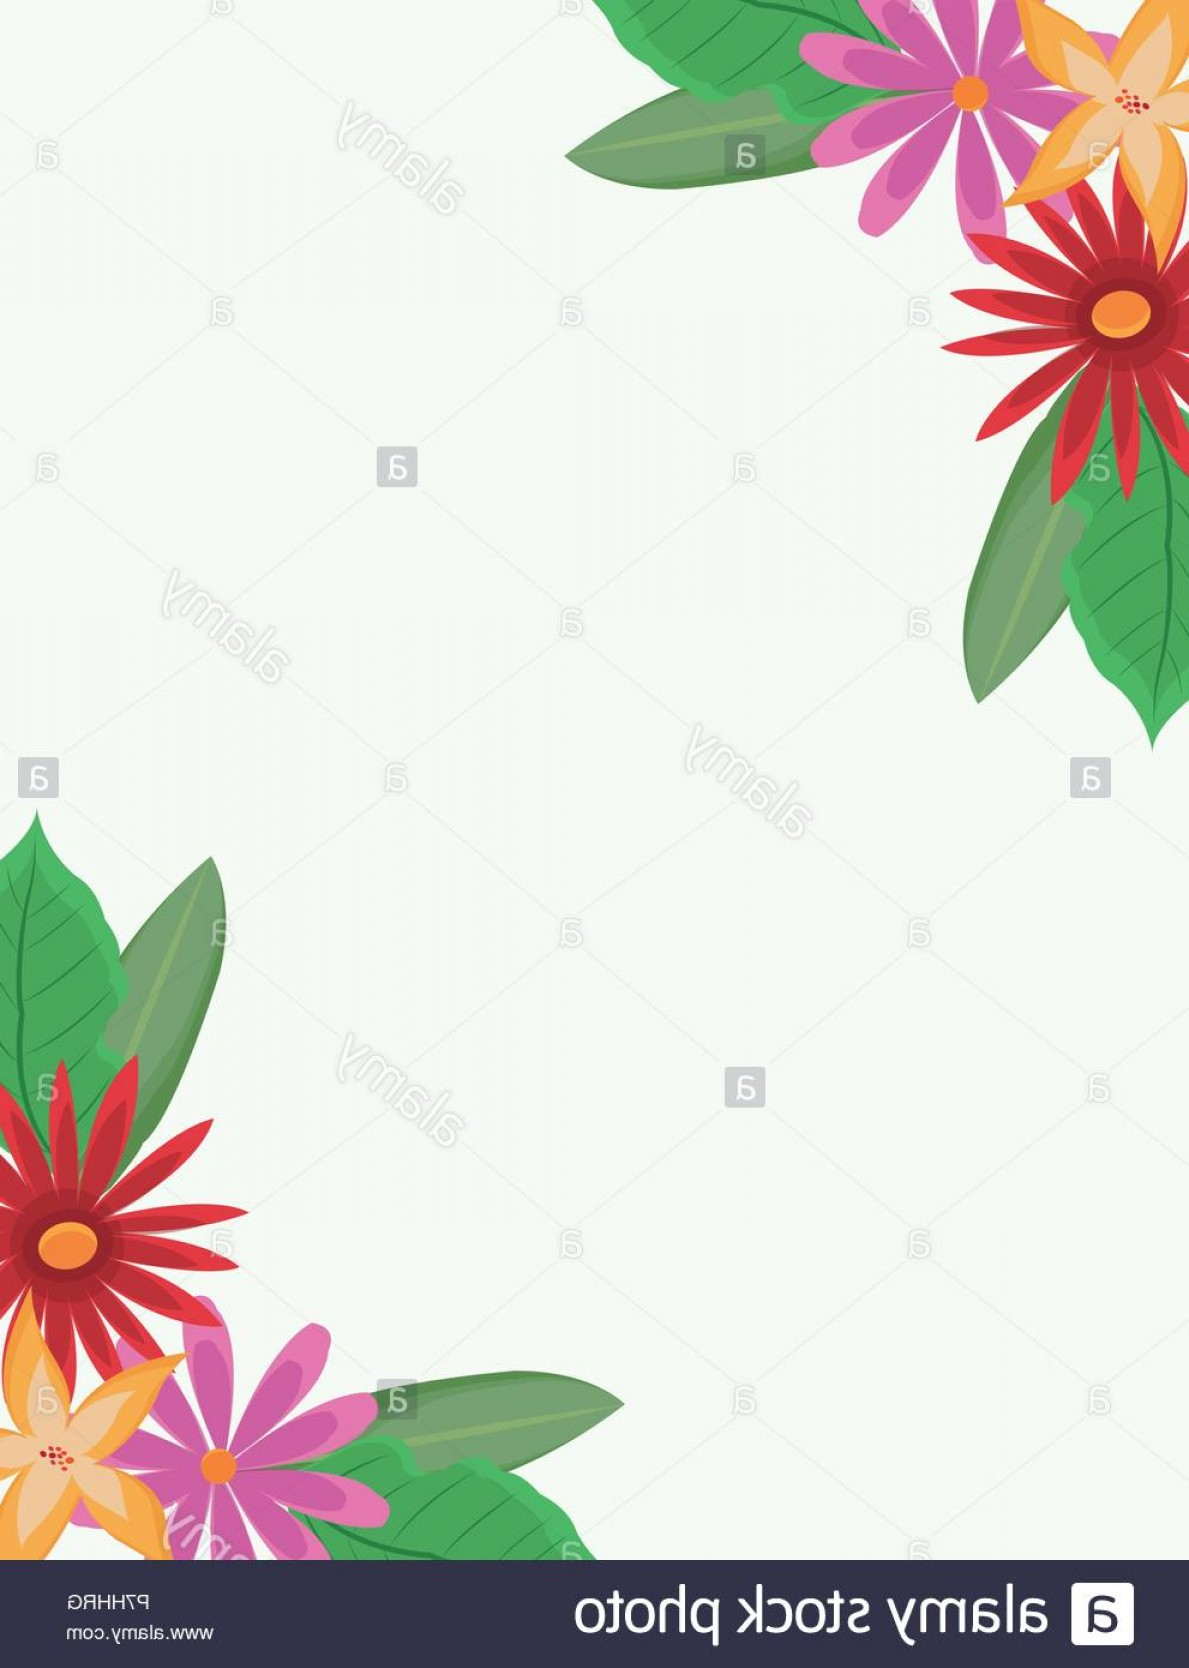 Beautiful Flowers Vector Graphic: Beautiful Flowers Frame Over White Background Vector Illustration Graphic Design Image